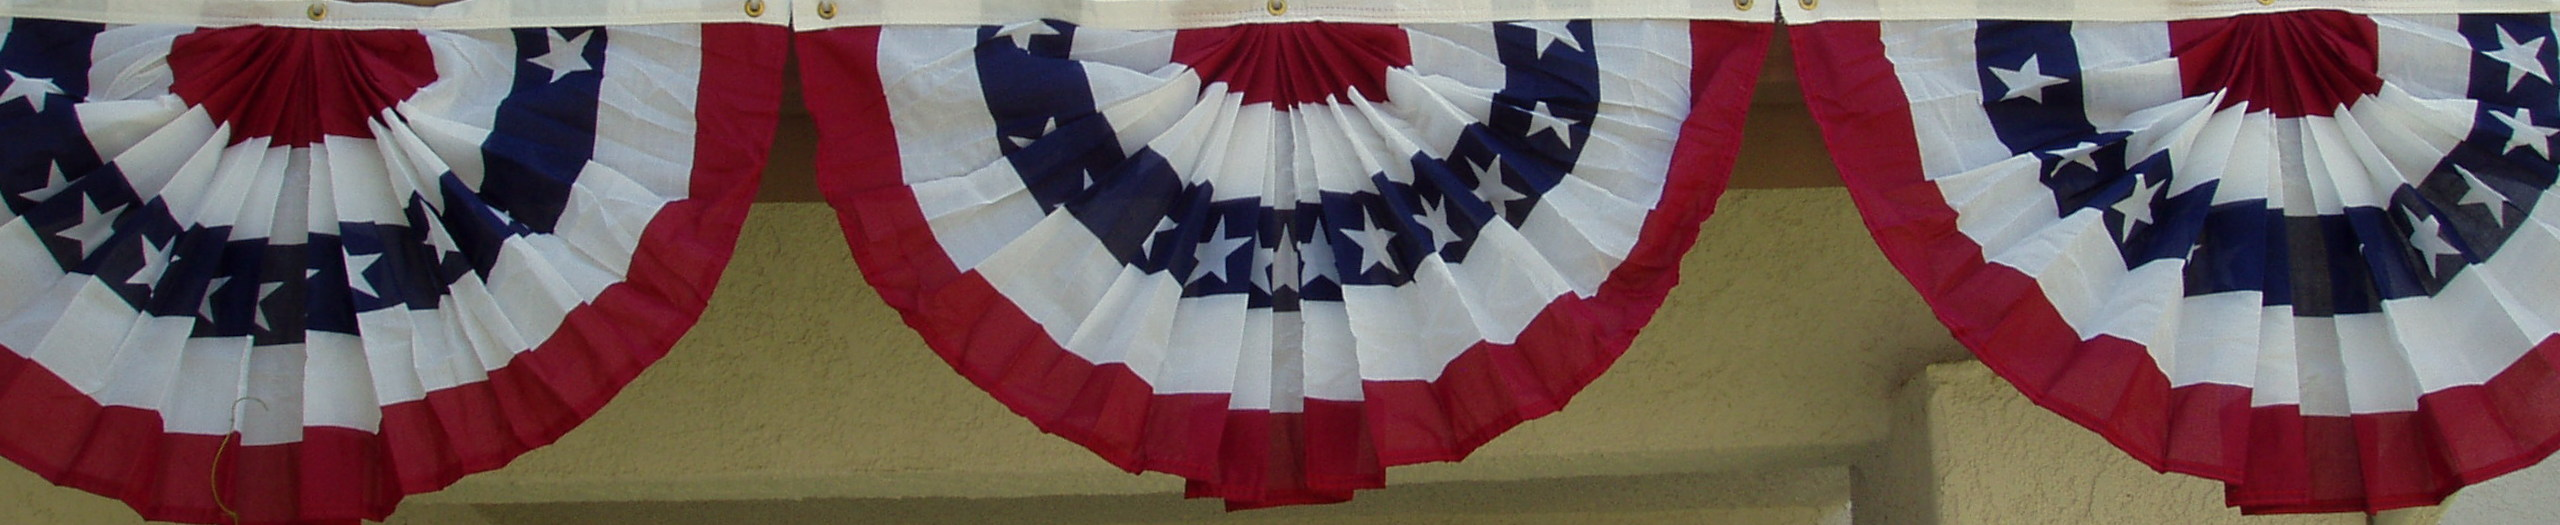 Decor patriotic home decorations the enchanted manor - Flag decorations for home ...